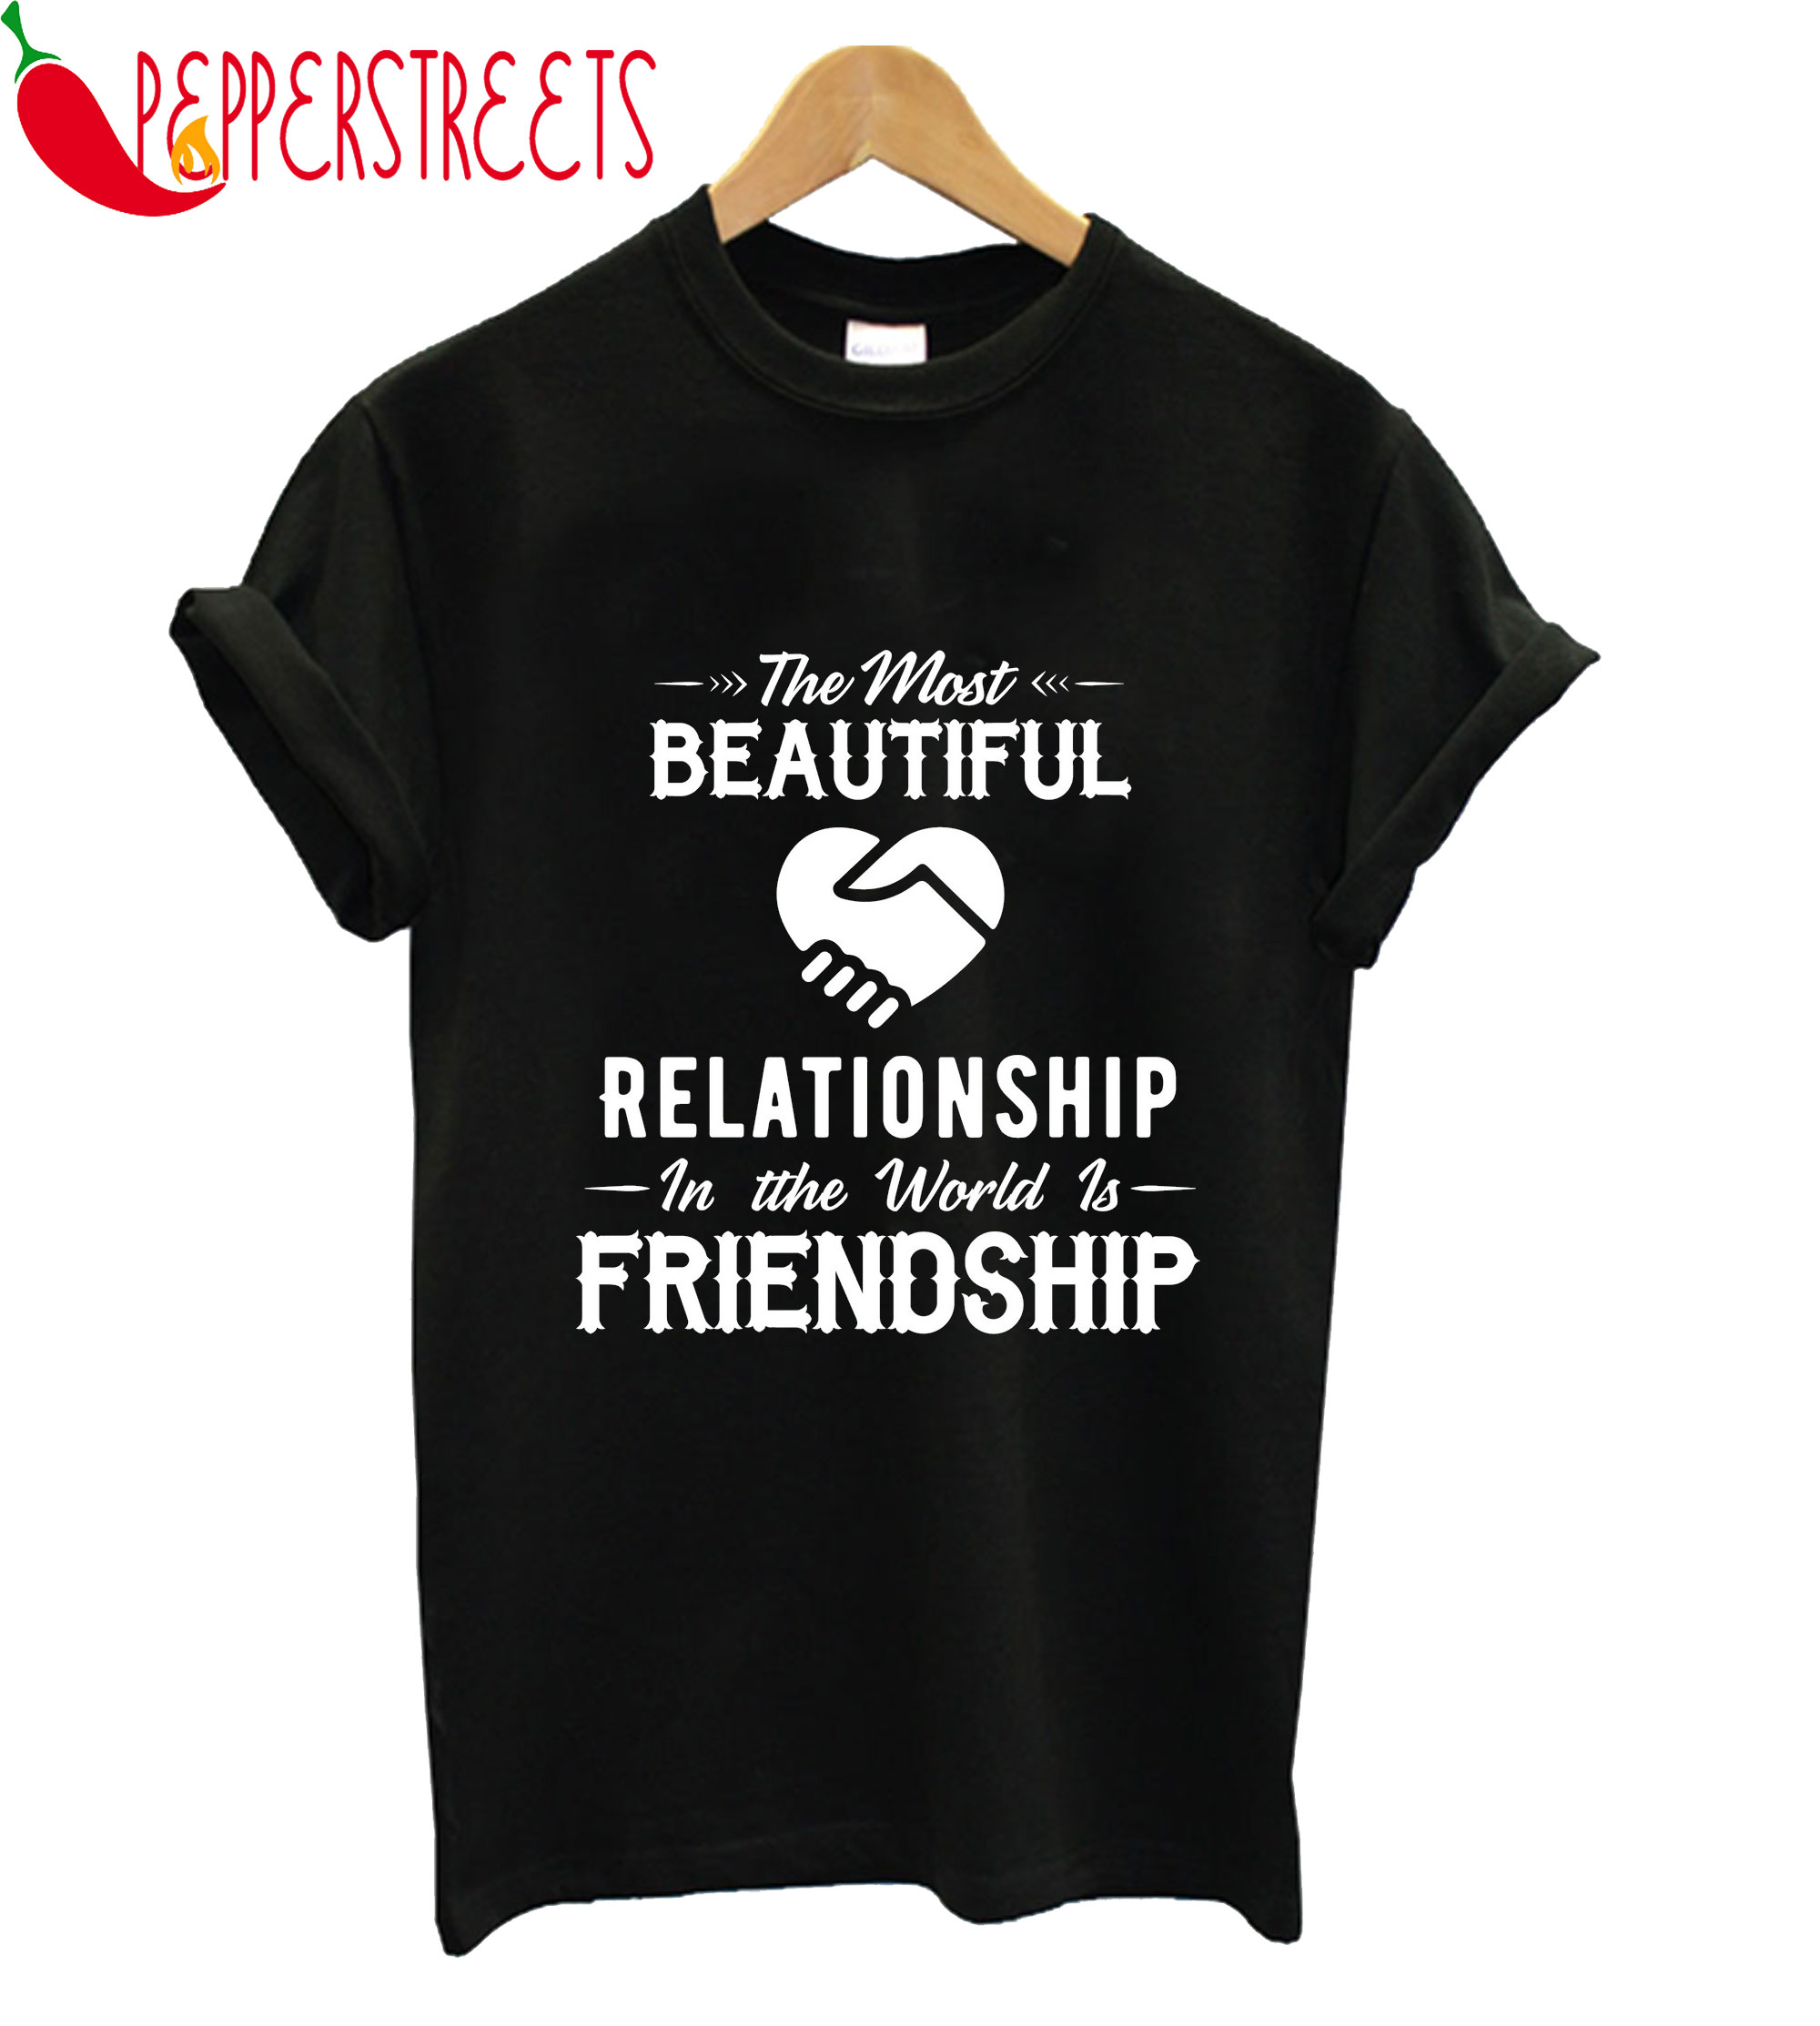 The Most Beaytiful Relationship The World Is Friendship T-Shirt